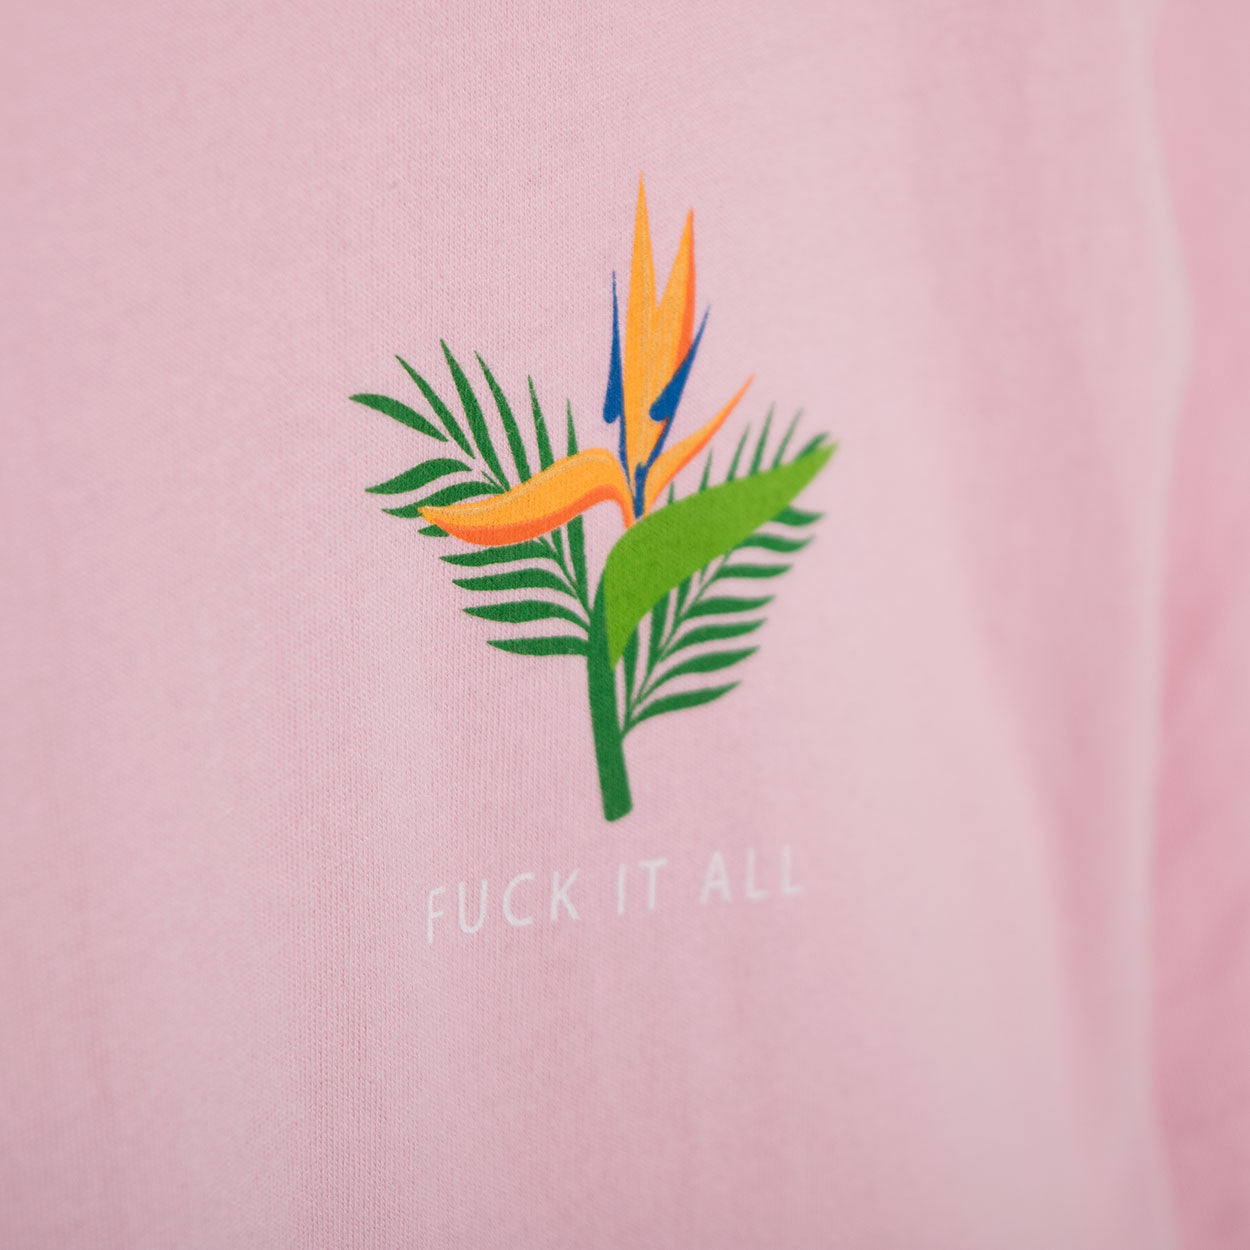 Good Worth Fuck It All T-Shirt - Pink